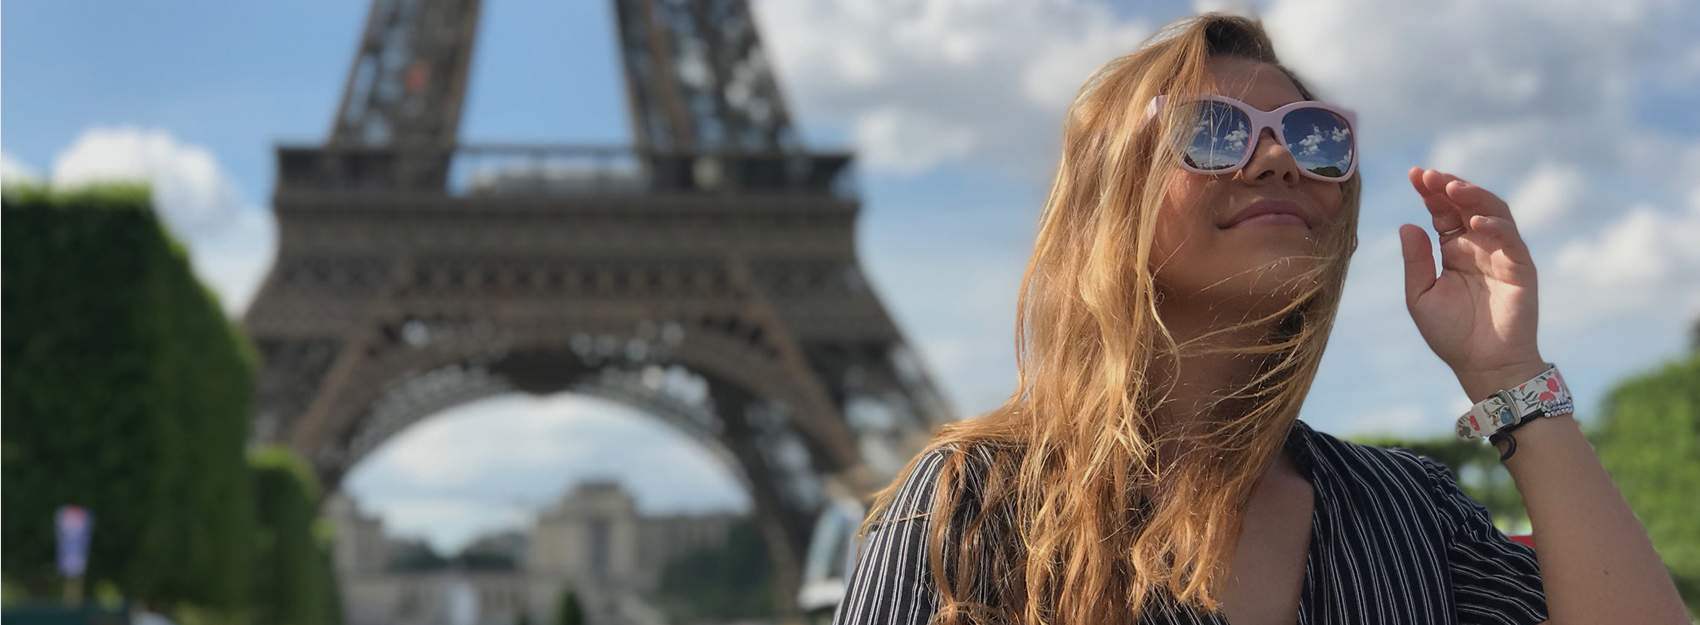 summer study abroad student wearing sunglasses in front of the eiffel tower